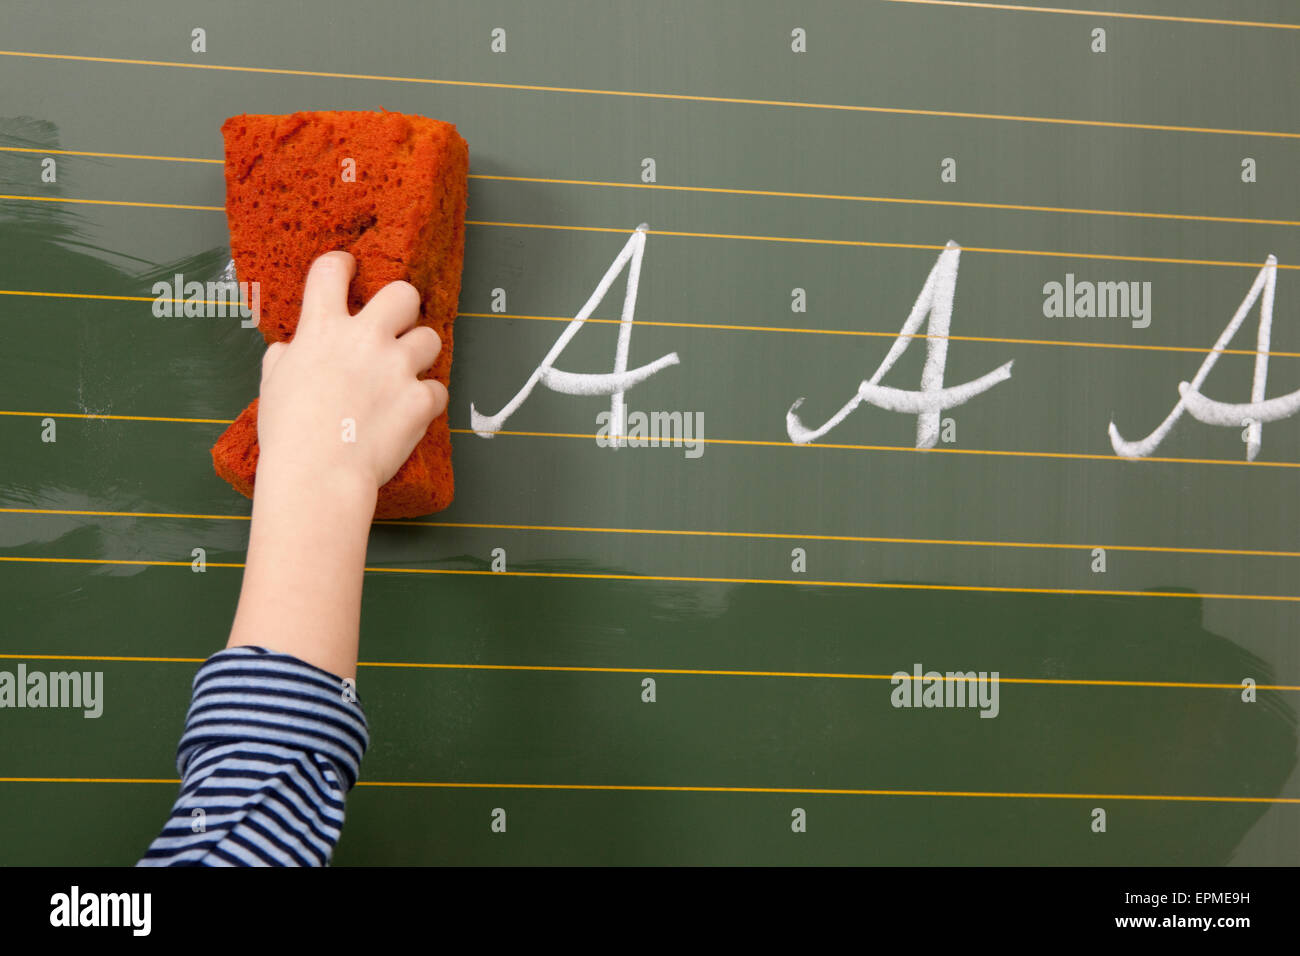 Tafel wischen clipart  Cleaning The Classroom Stockfotos & Cleaning The Classroom Bilder ...